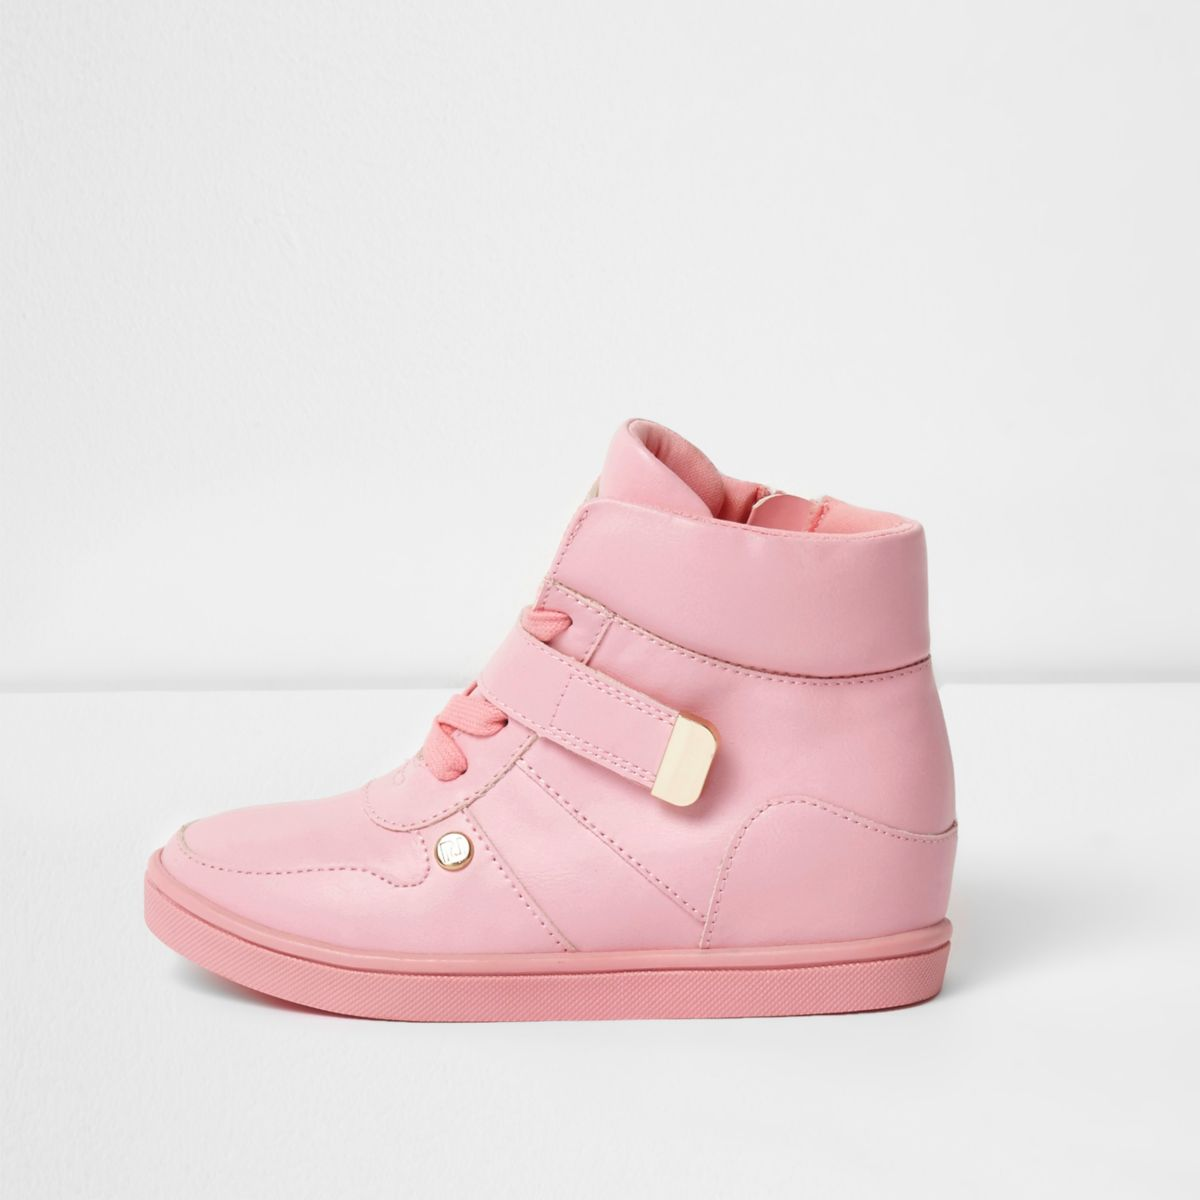 Girls pink high top wedge sneakers